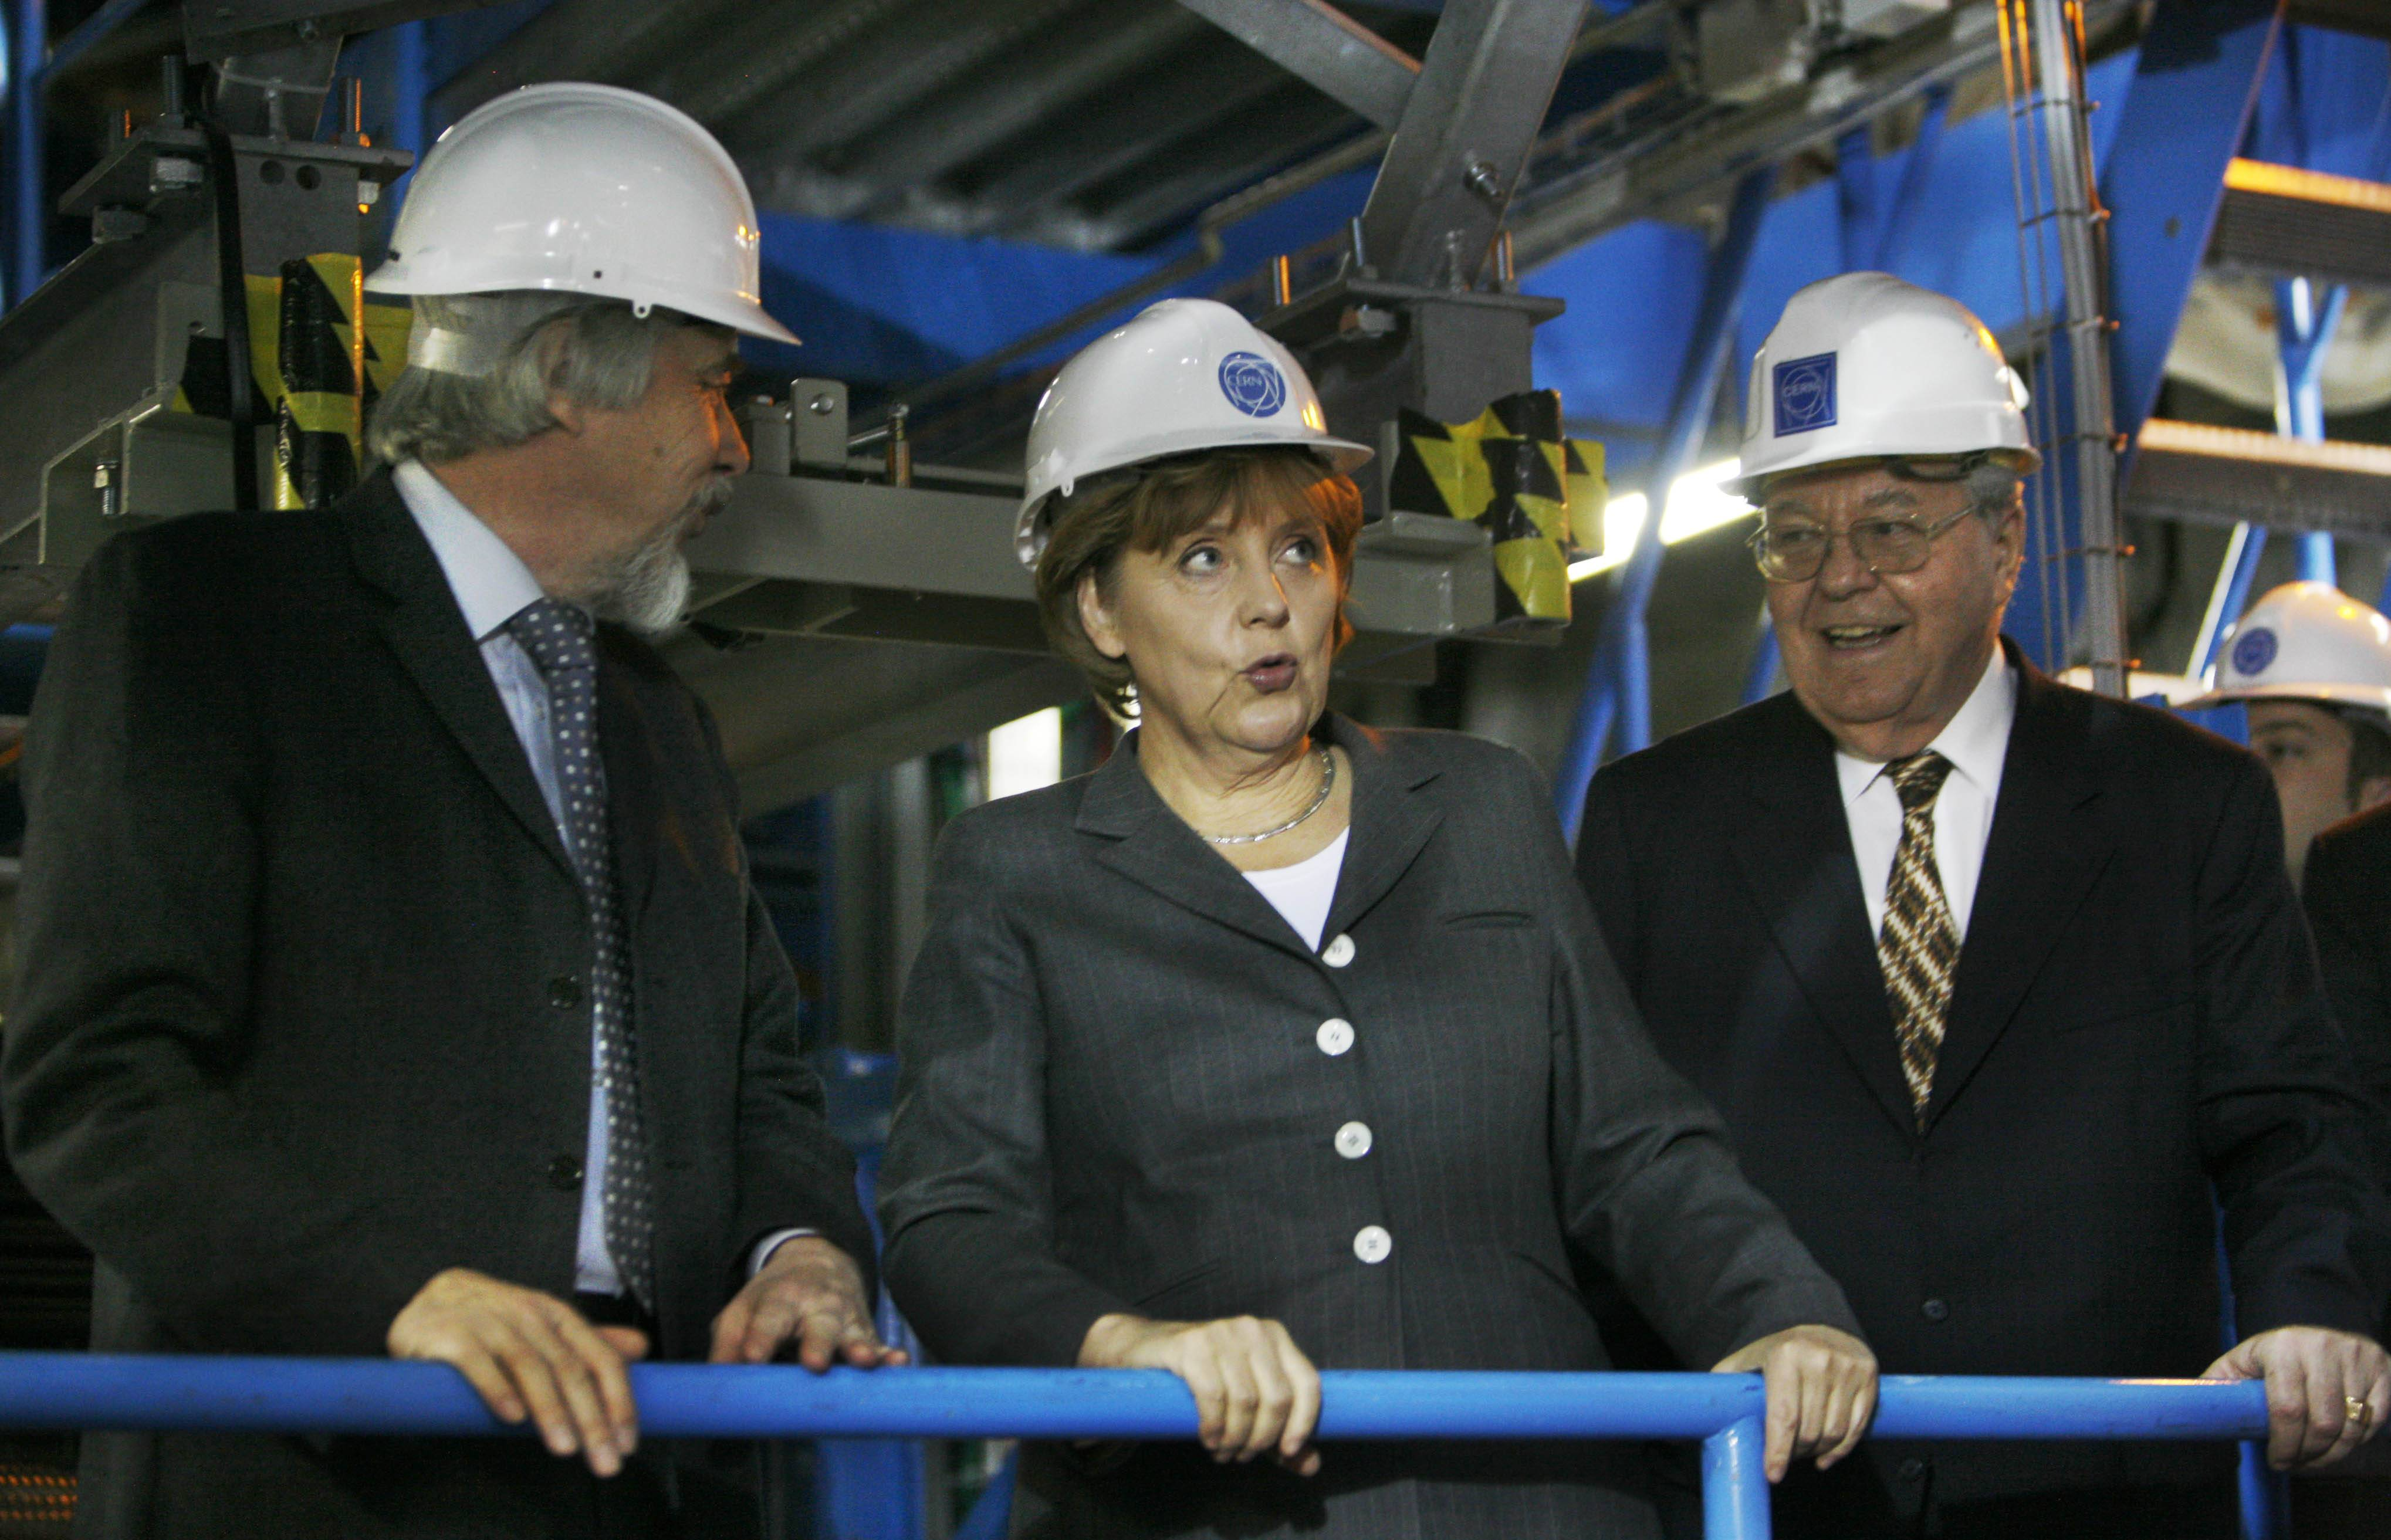 In this Tuesday, April 29, 2008 file photo made by Associated Press photographer Anja Niedringhaus, German chancellor Angela Merkel, center, grimaces, as she tours CERN, the European Organization for Nuclear Research, with Rolf Heuer, CERN Director designated, left, and Robert Aymar, Director General CERN, in Geneva, Switzerland.